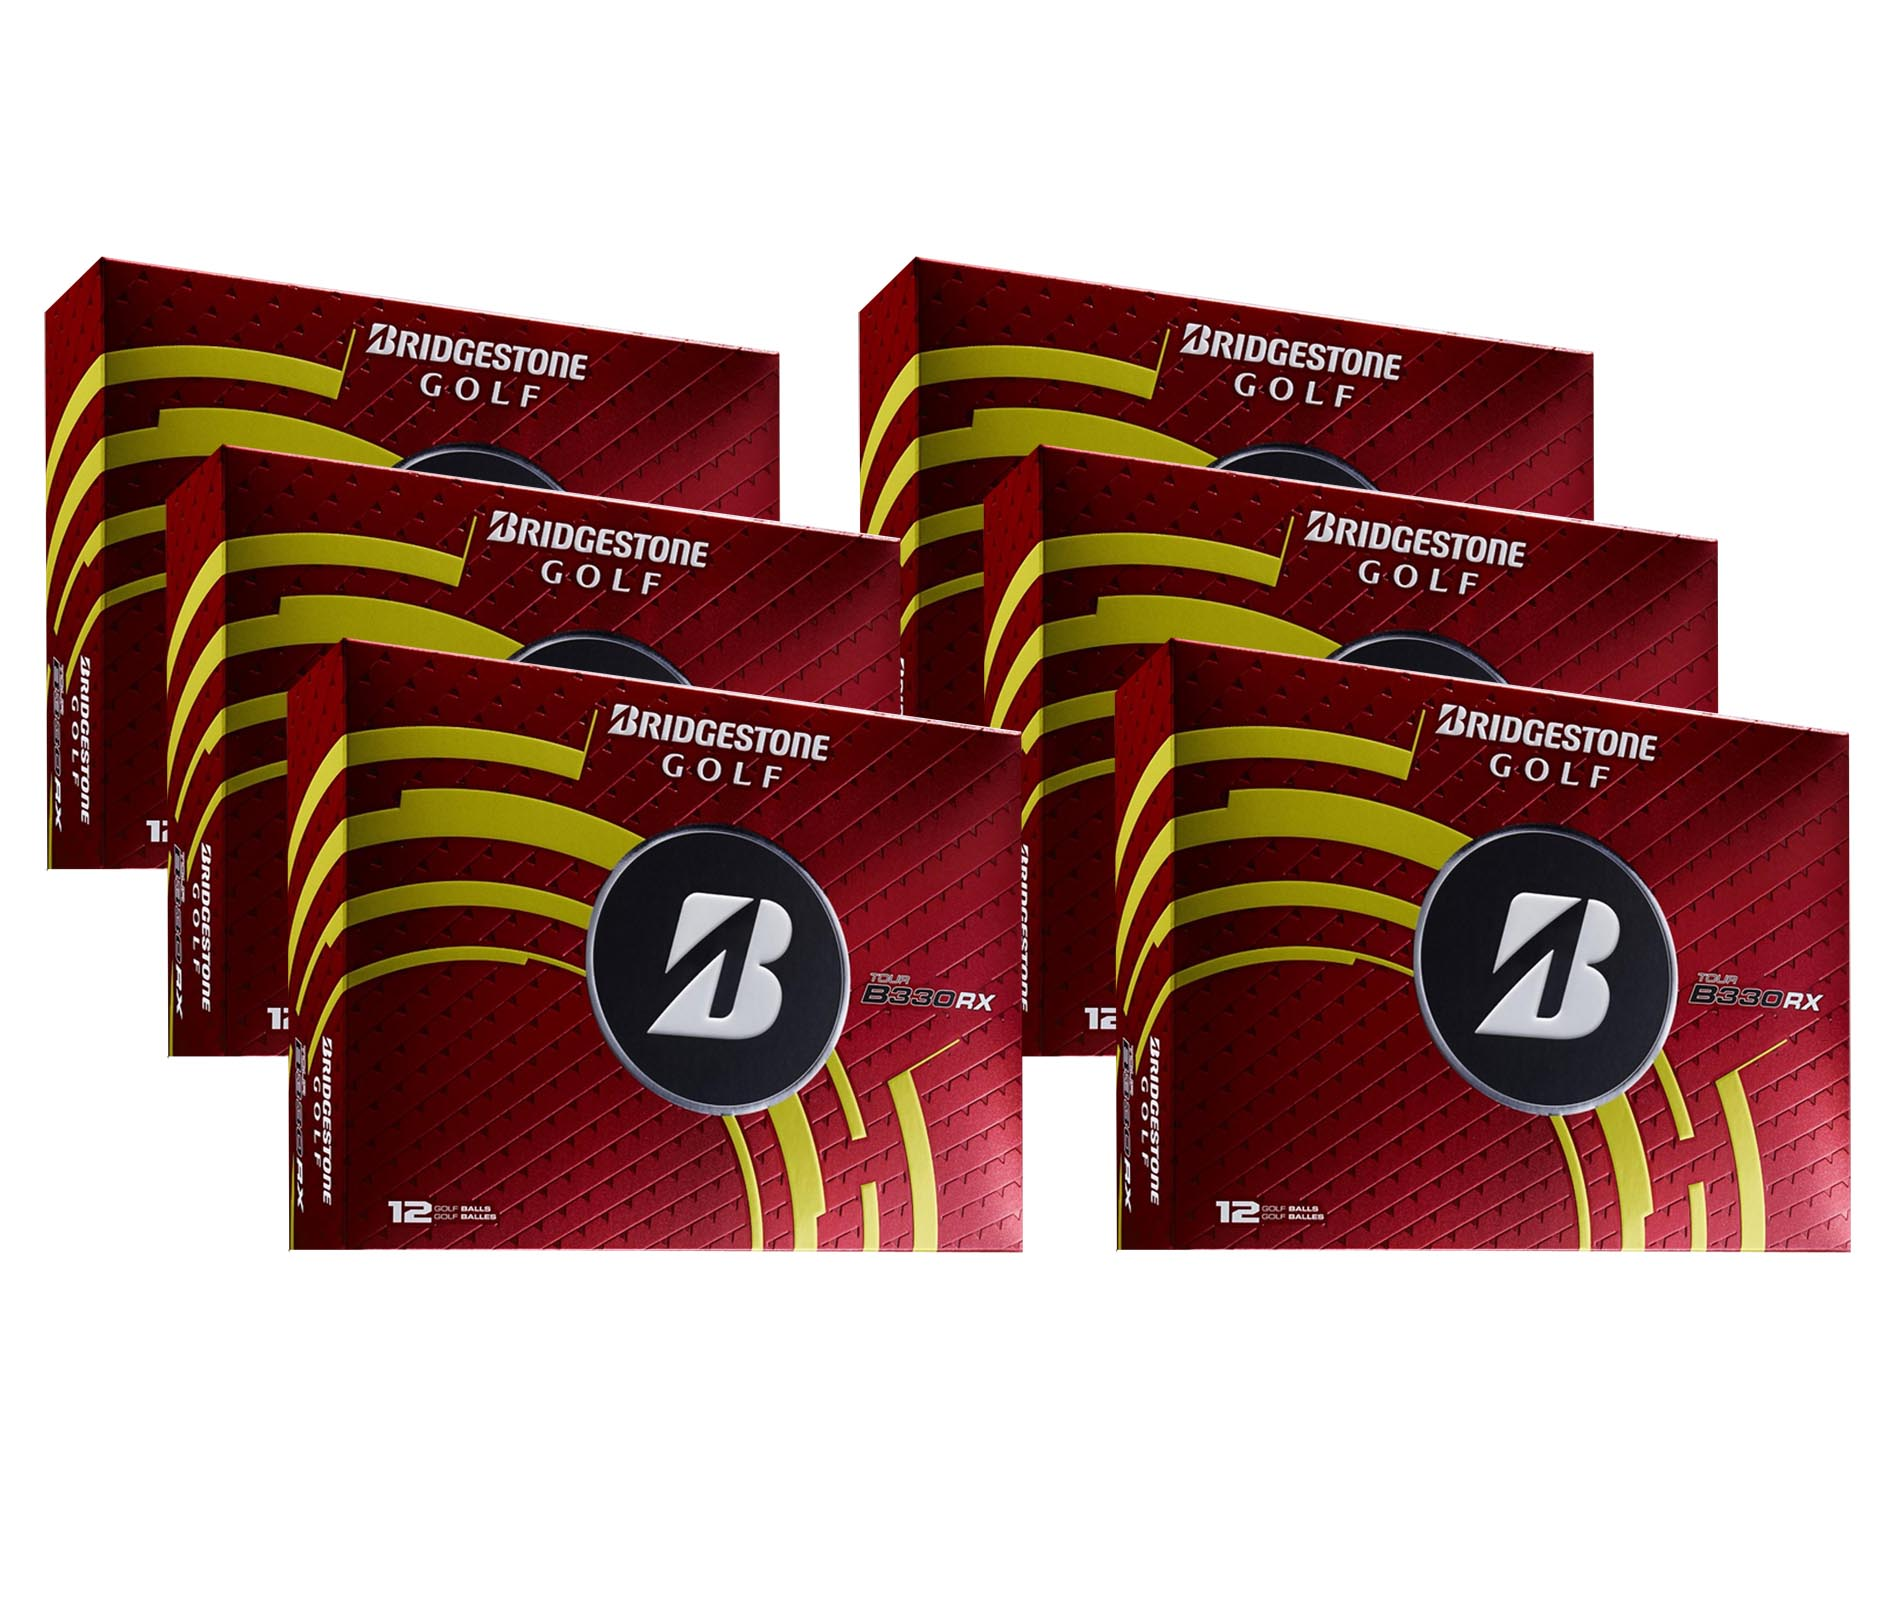 Bridgestone B330-RX White Tour Distance Golf Balls | 6 Dozen